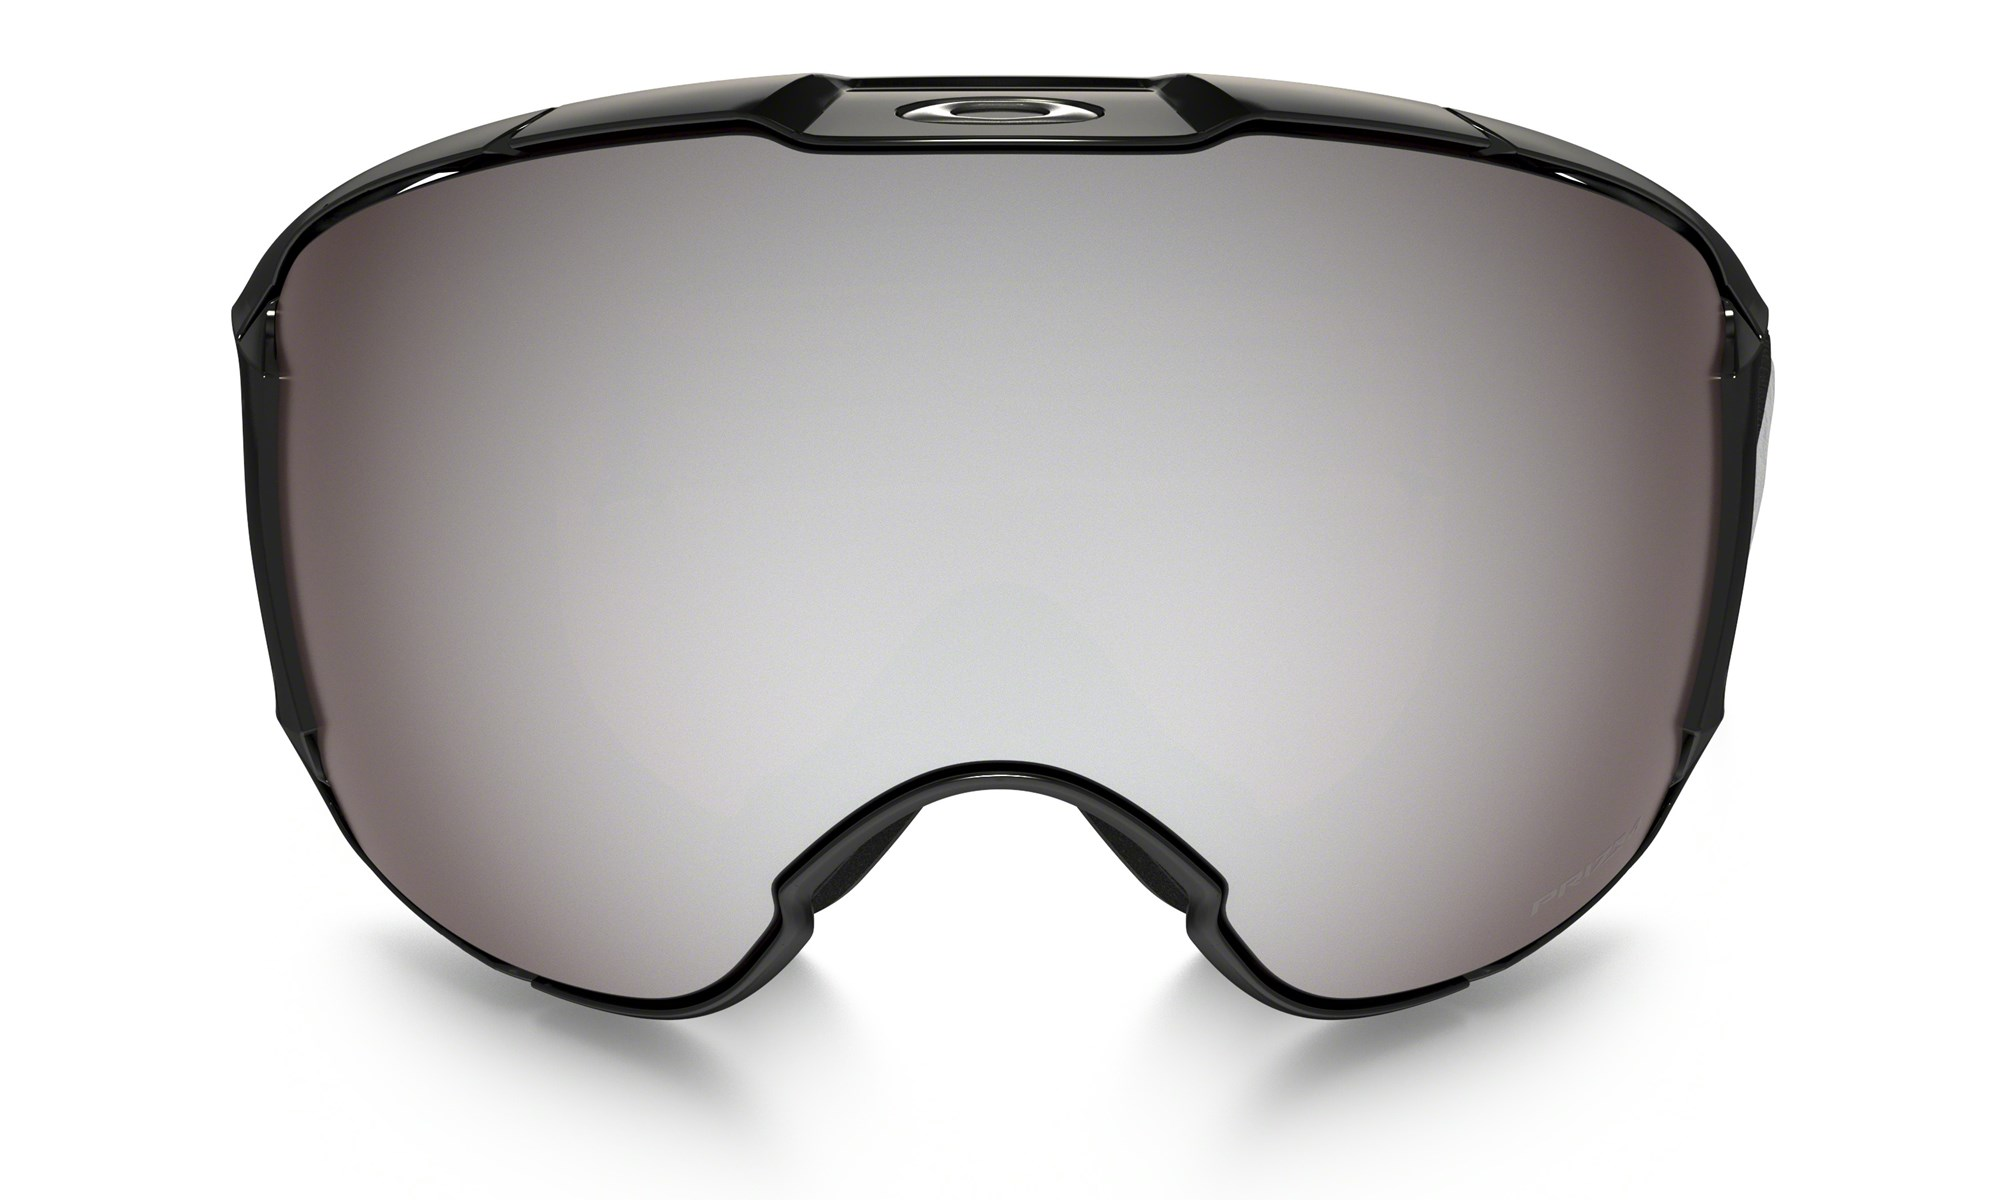 d5473ed2a52 Oakley Airbrake XL Goggles Black with Prizm Black and Prizm Rose £215.00